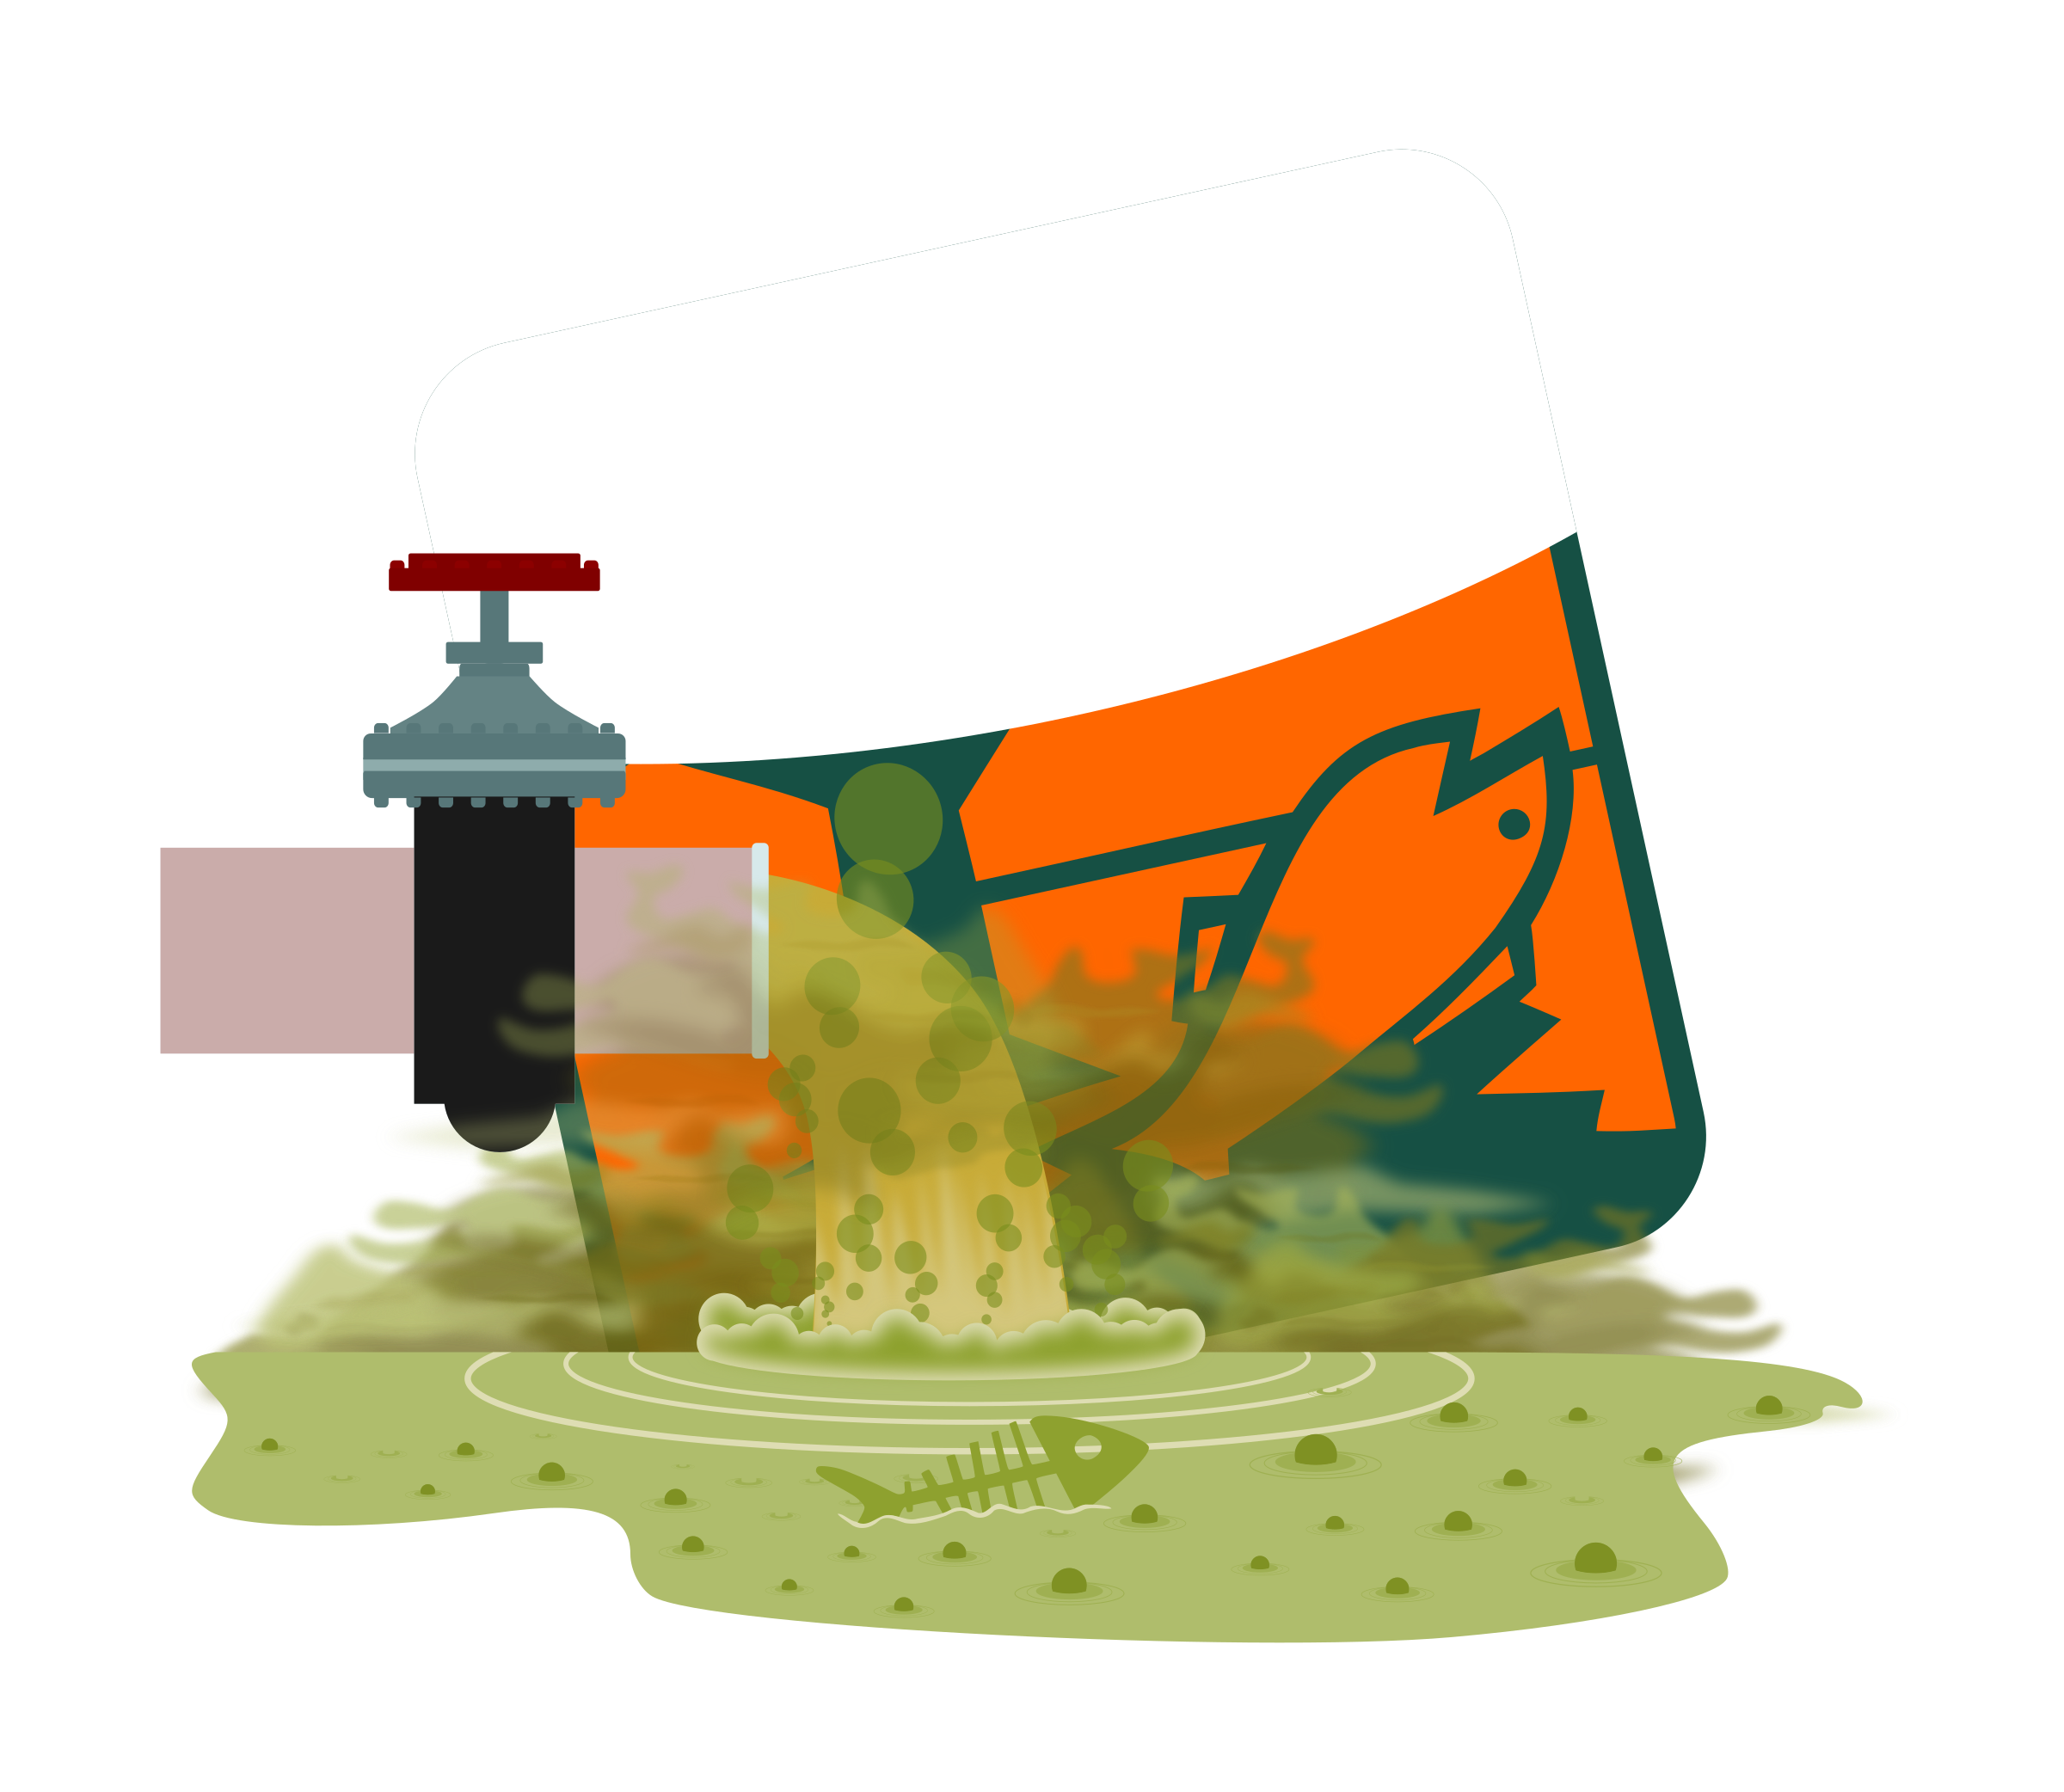 Fish clipart water pollution. Big image png